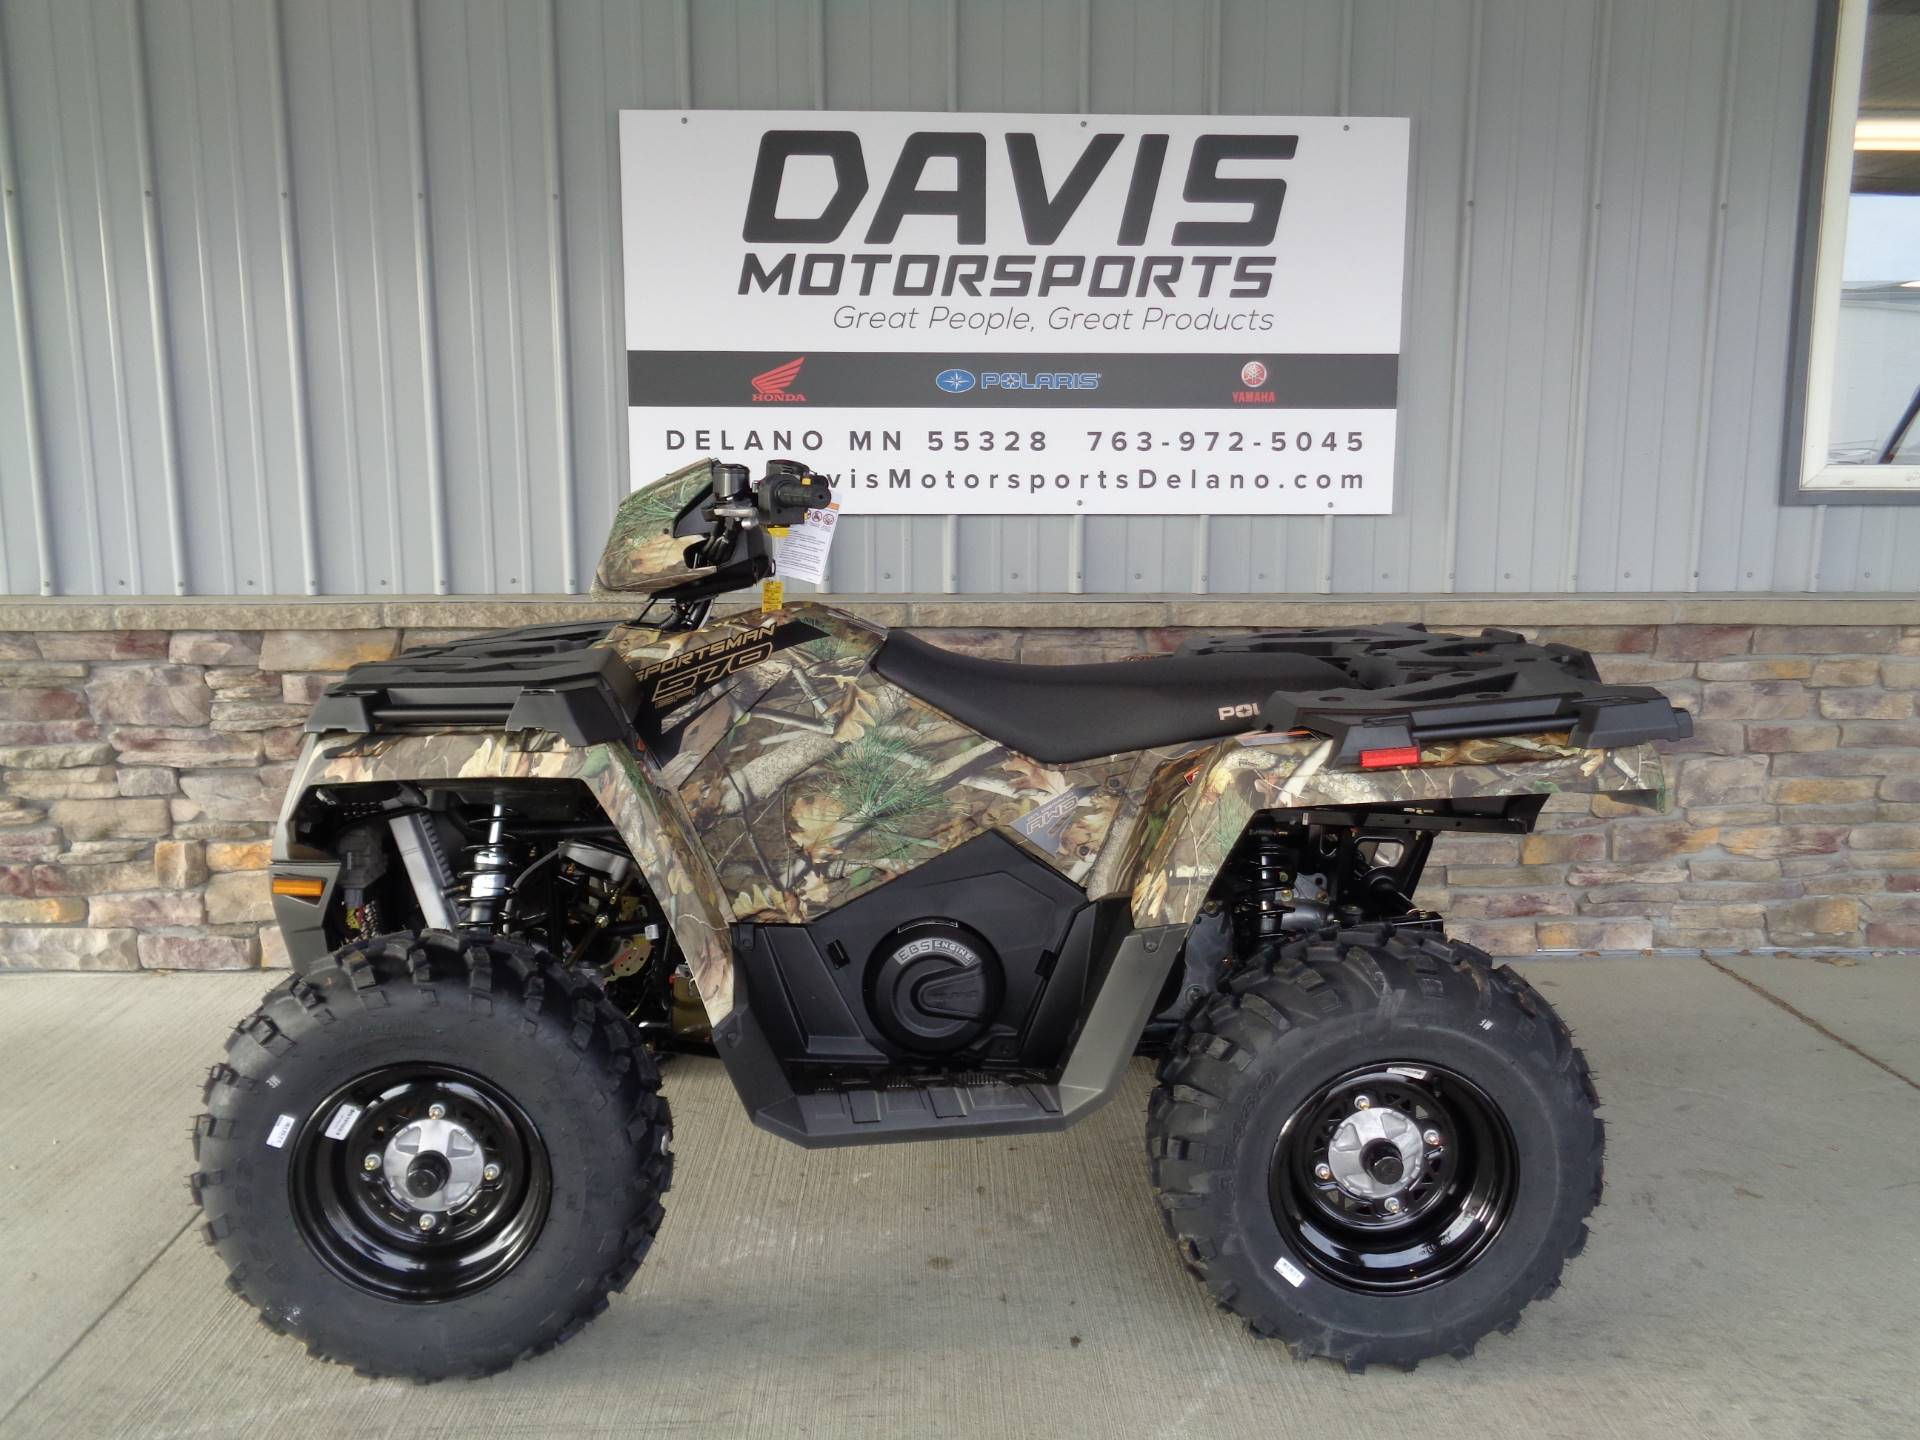 2019 Polaris Sportsman 570 EPS Camo in Delano, Minnesota - Photo 2